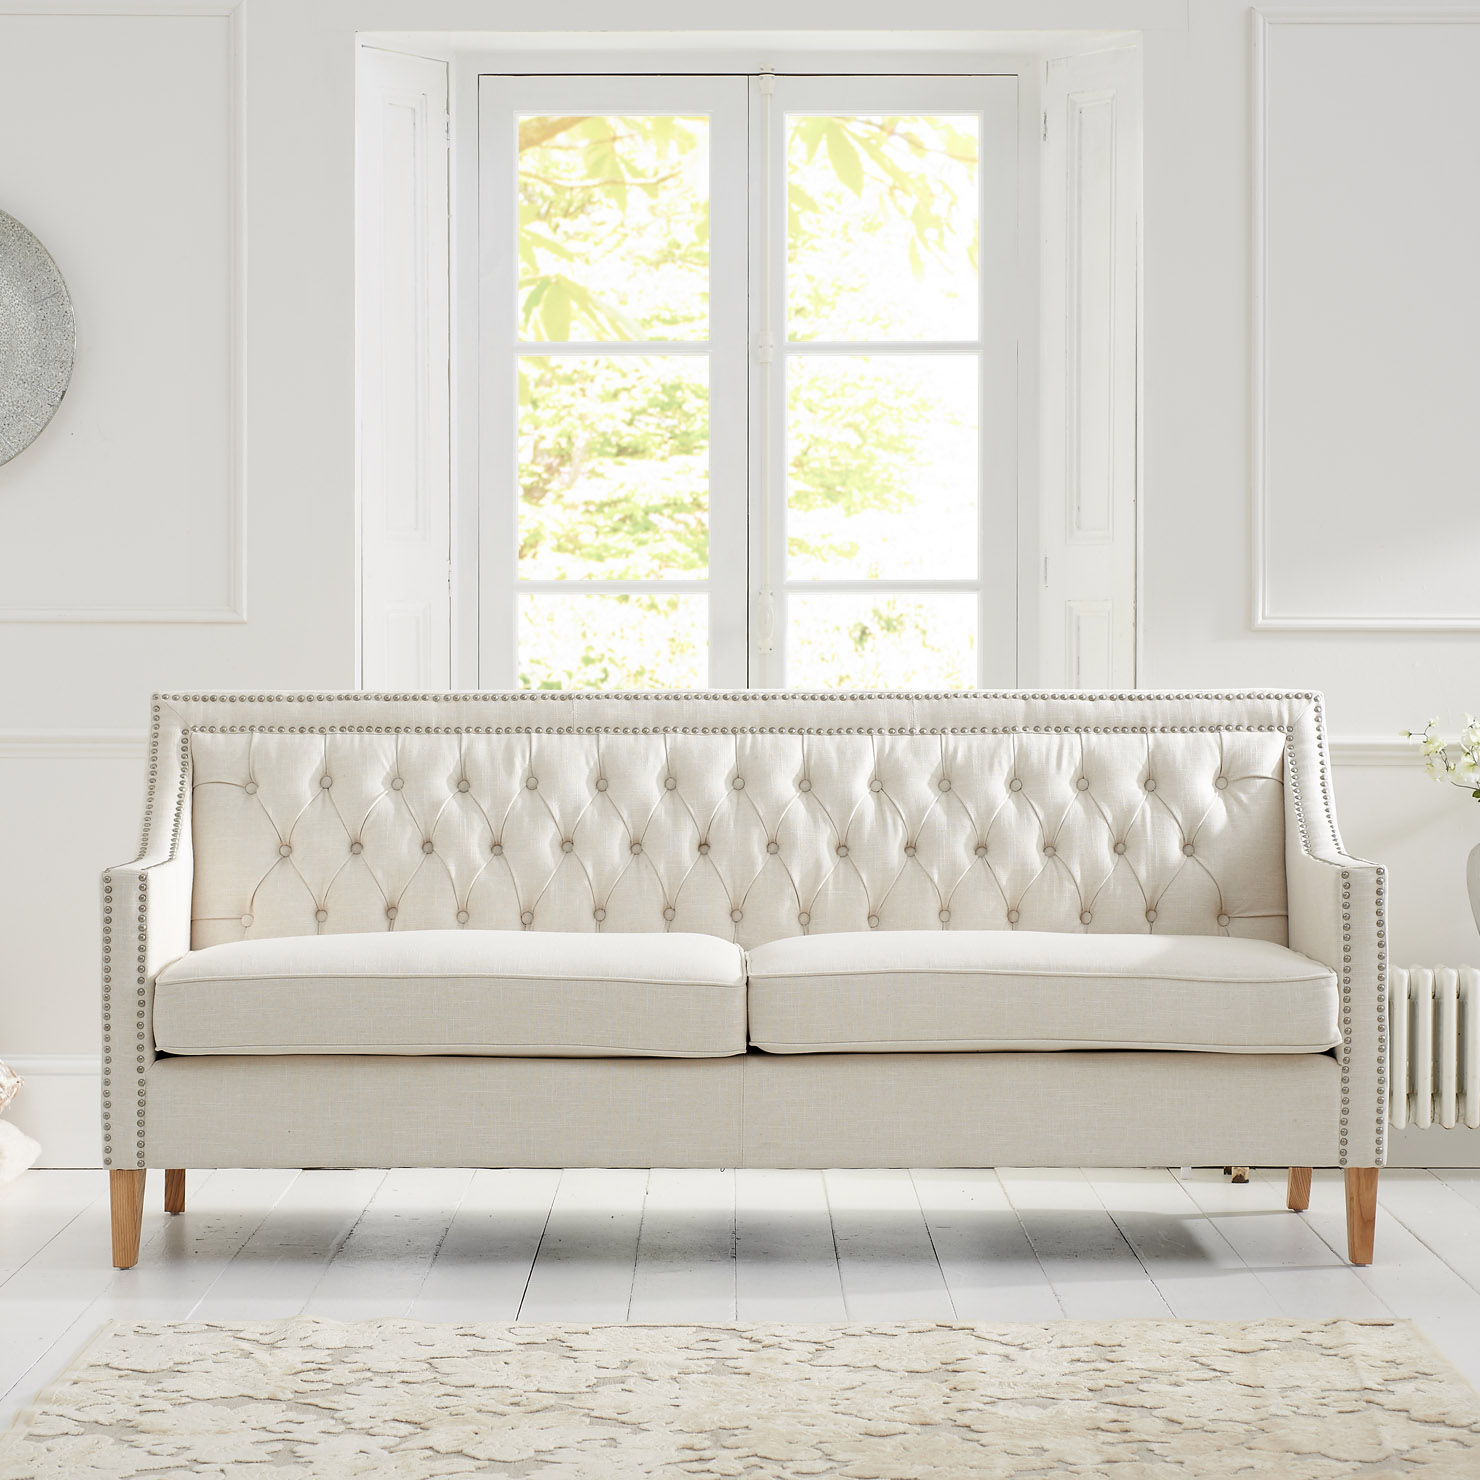 cushions for 3 seater wooden sofa build a houston casa bella ivory fabric best deal online